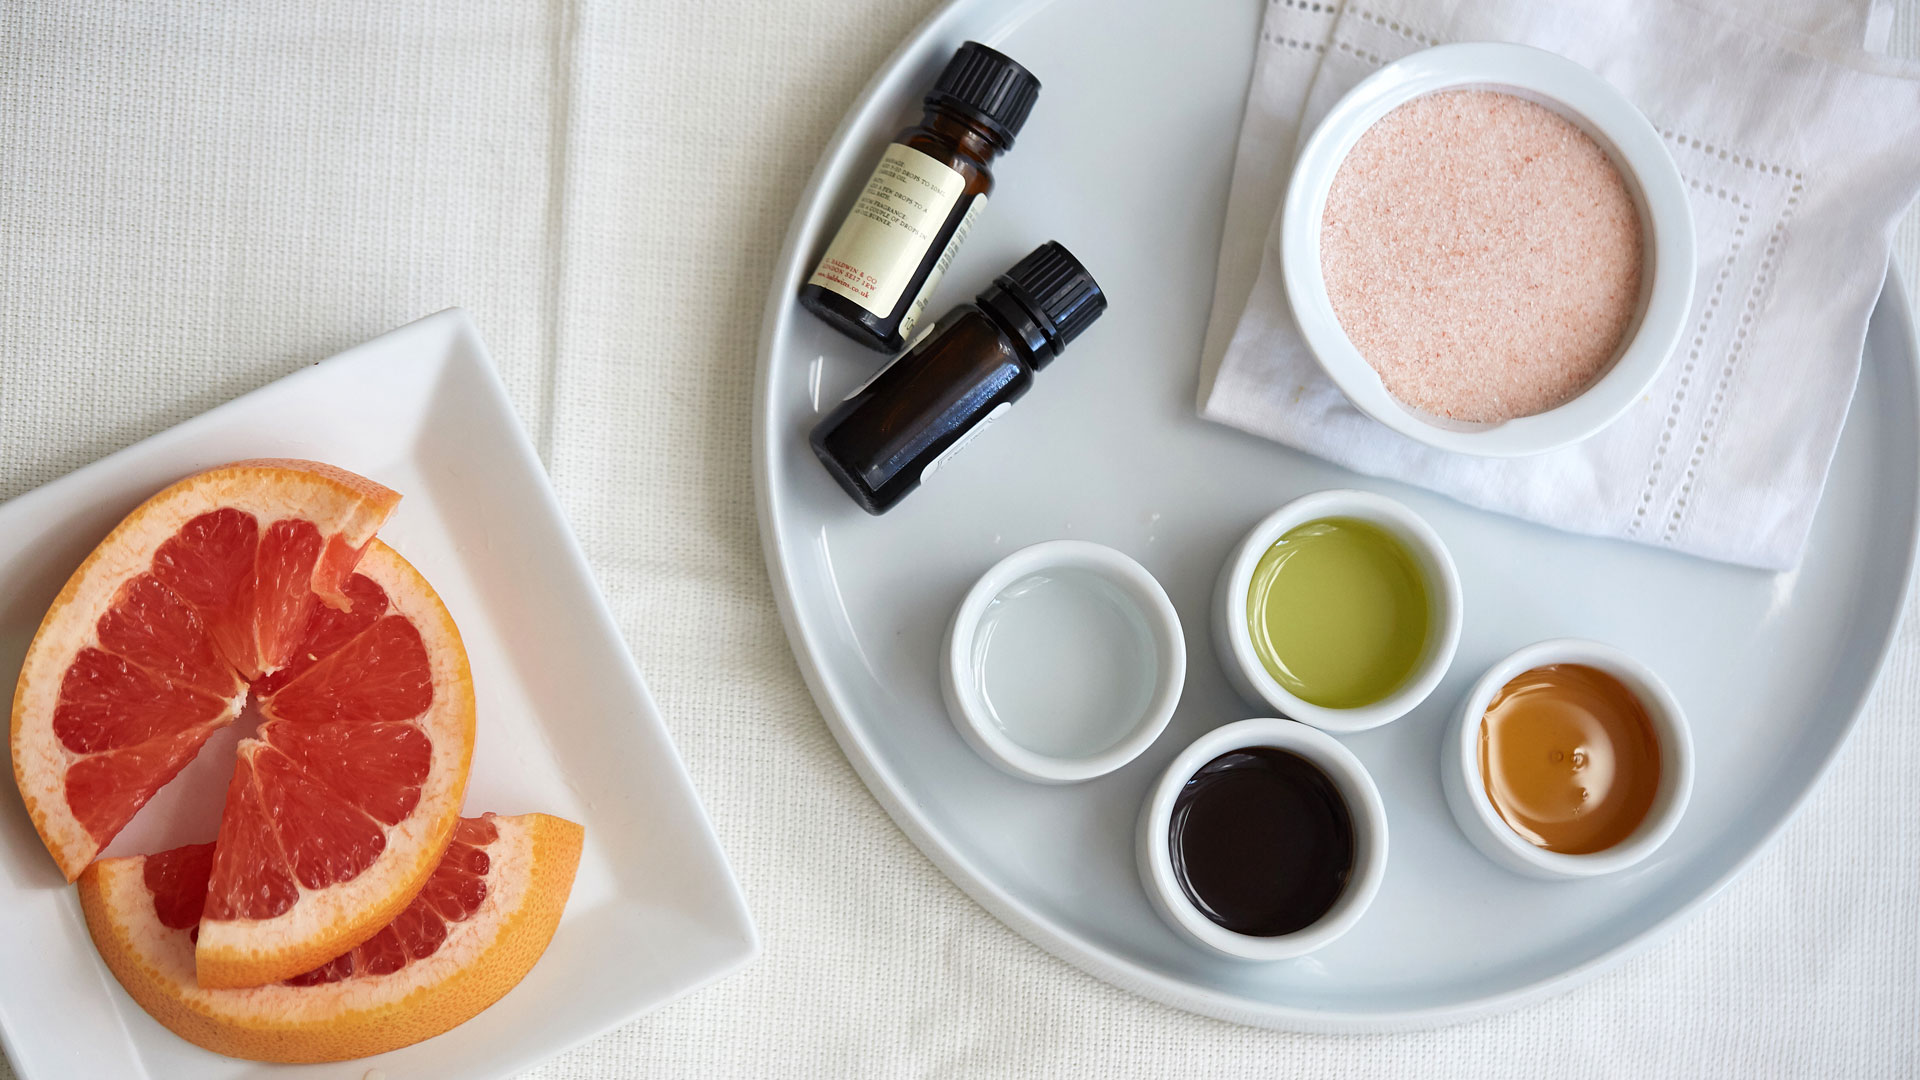 Ingredients for Caroline Wachsmuth's Pink Salt Body Scrub recipe.